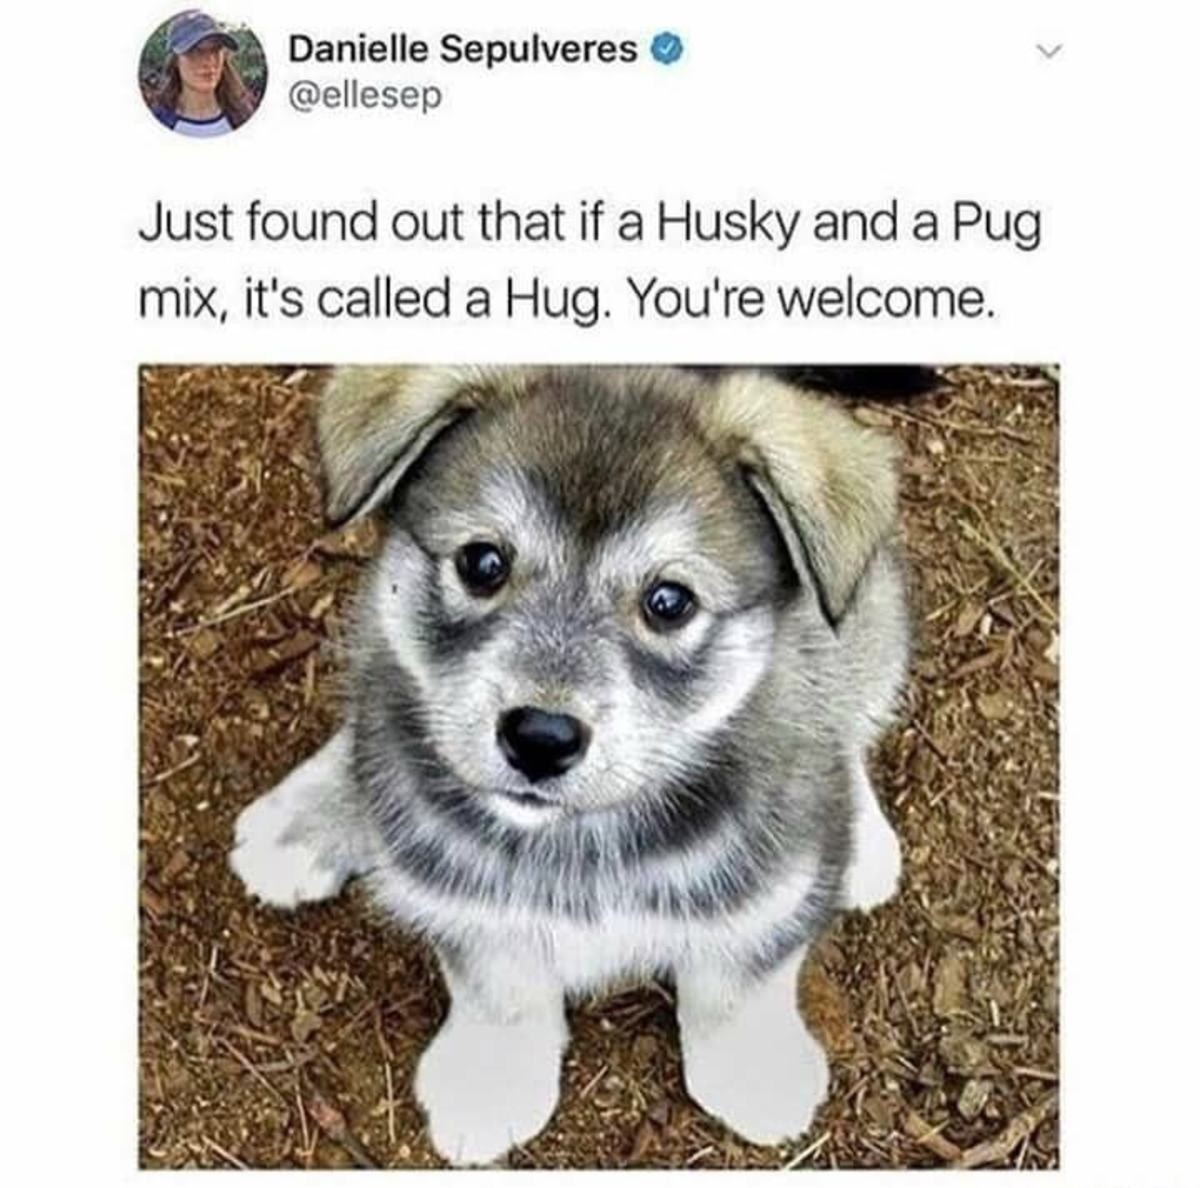 The cute canines. join list: CuteDogs (233 subs)Mention History. Danielle Sepulchres (tlt v Just found out that if a Husky and a Pug mix, it' s called a Hug. Yo